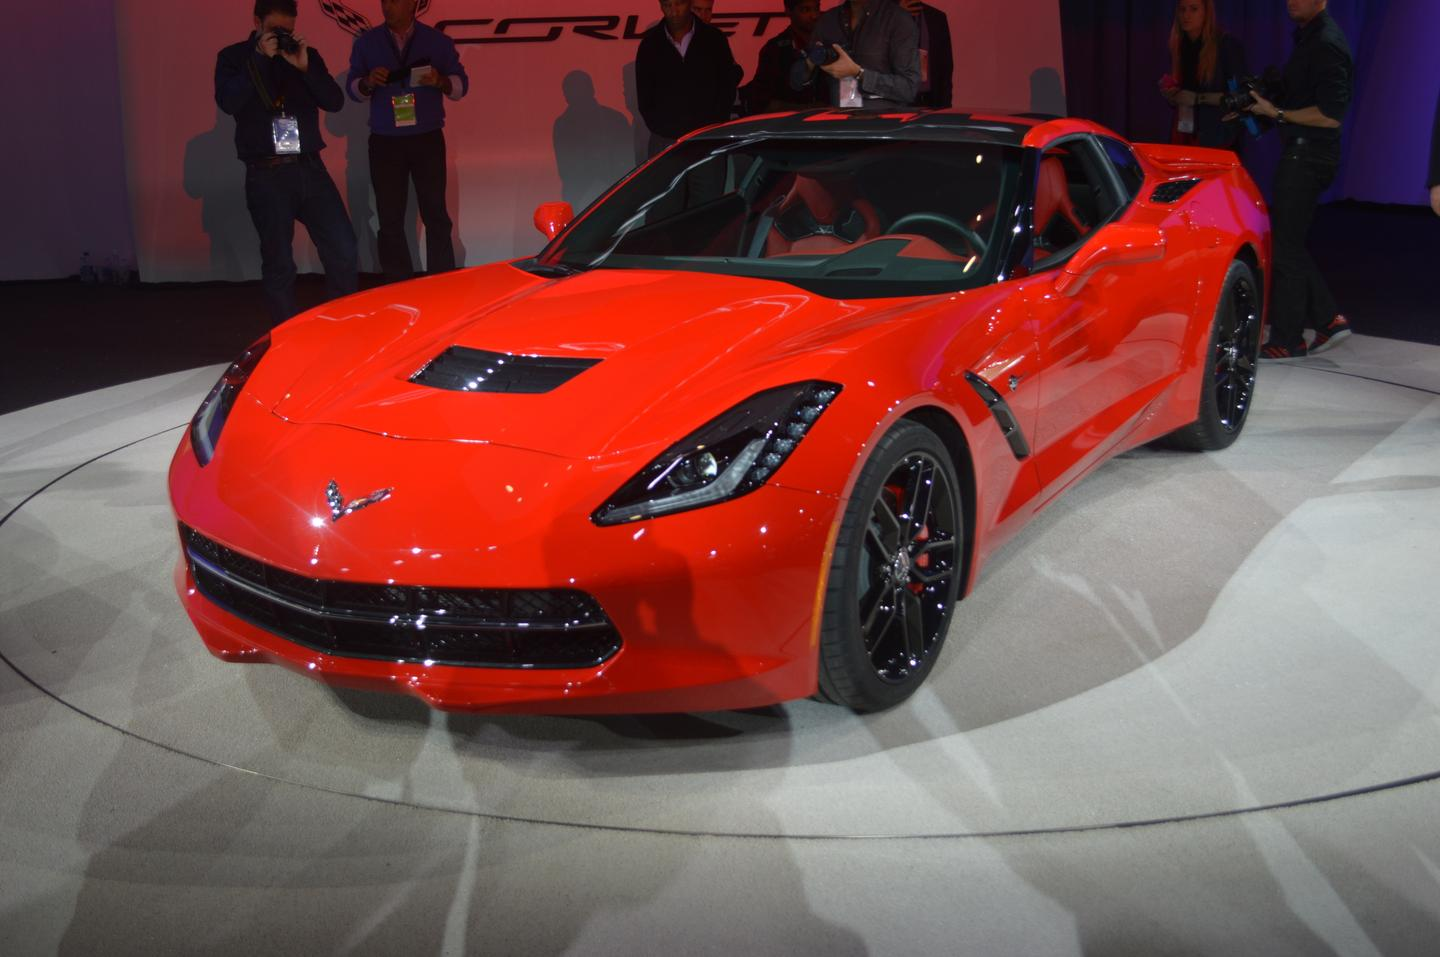 2014 Corvette Stingray at NAIAS